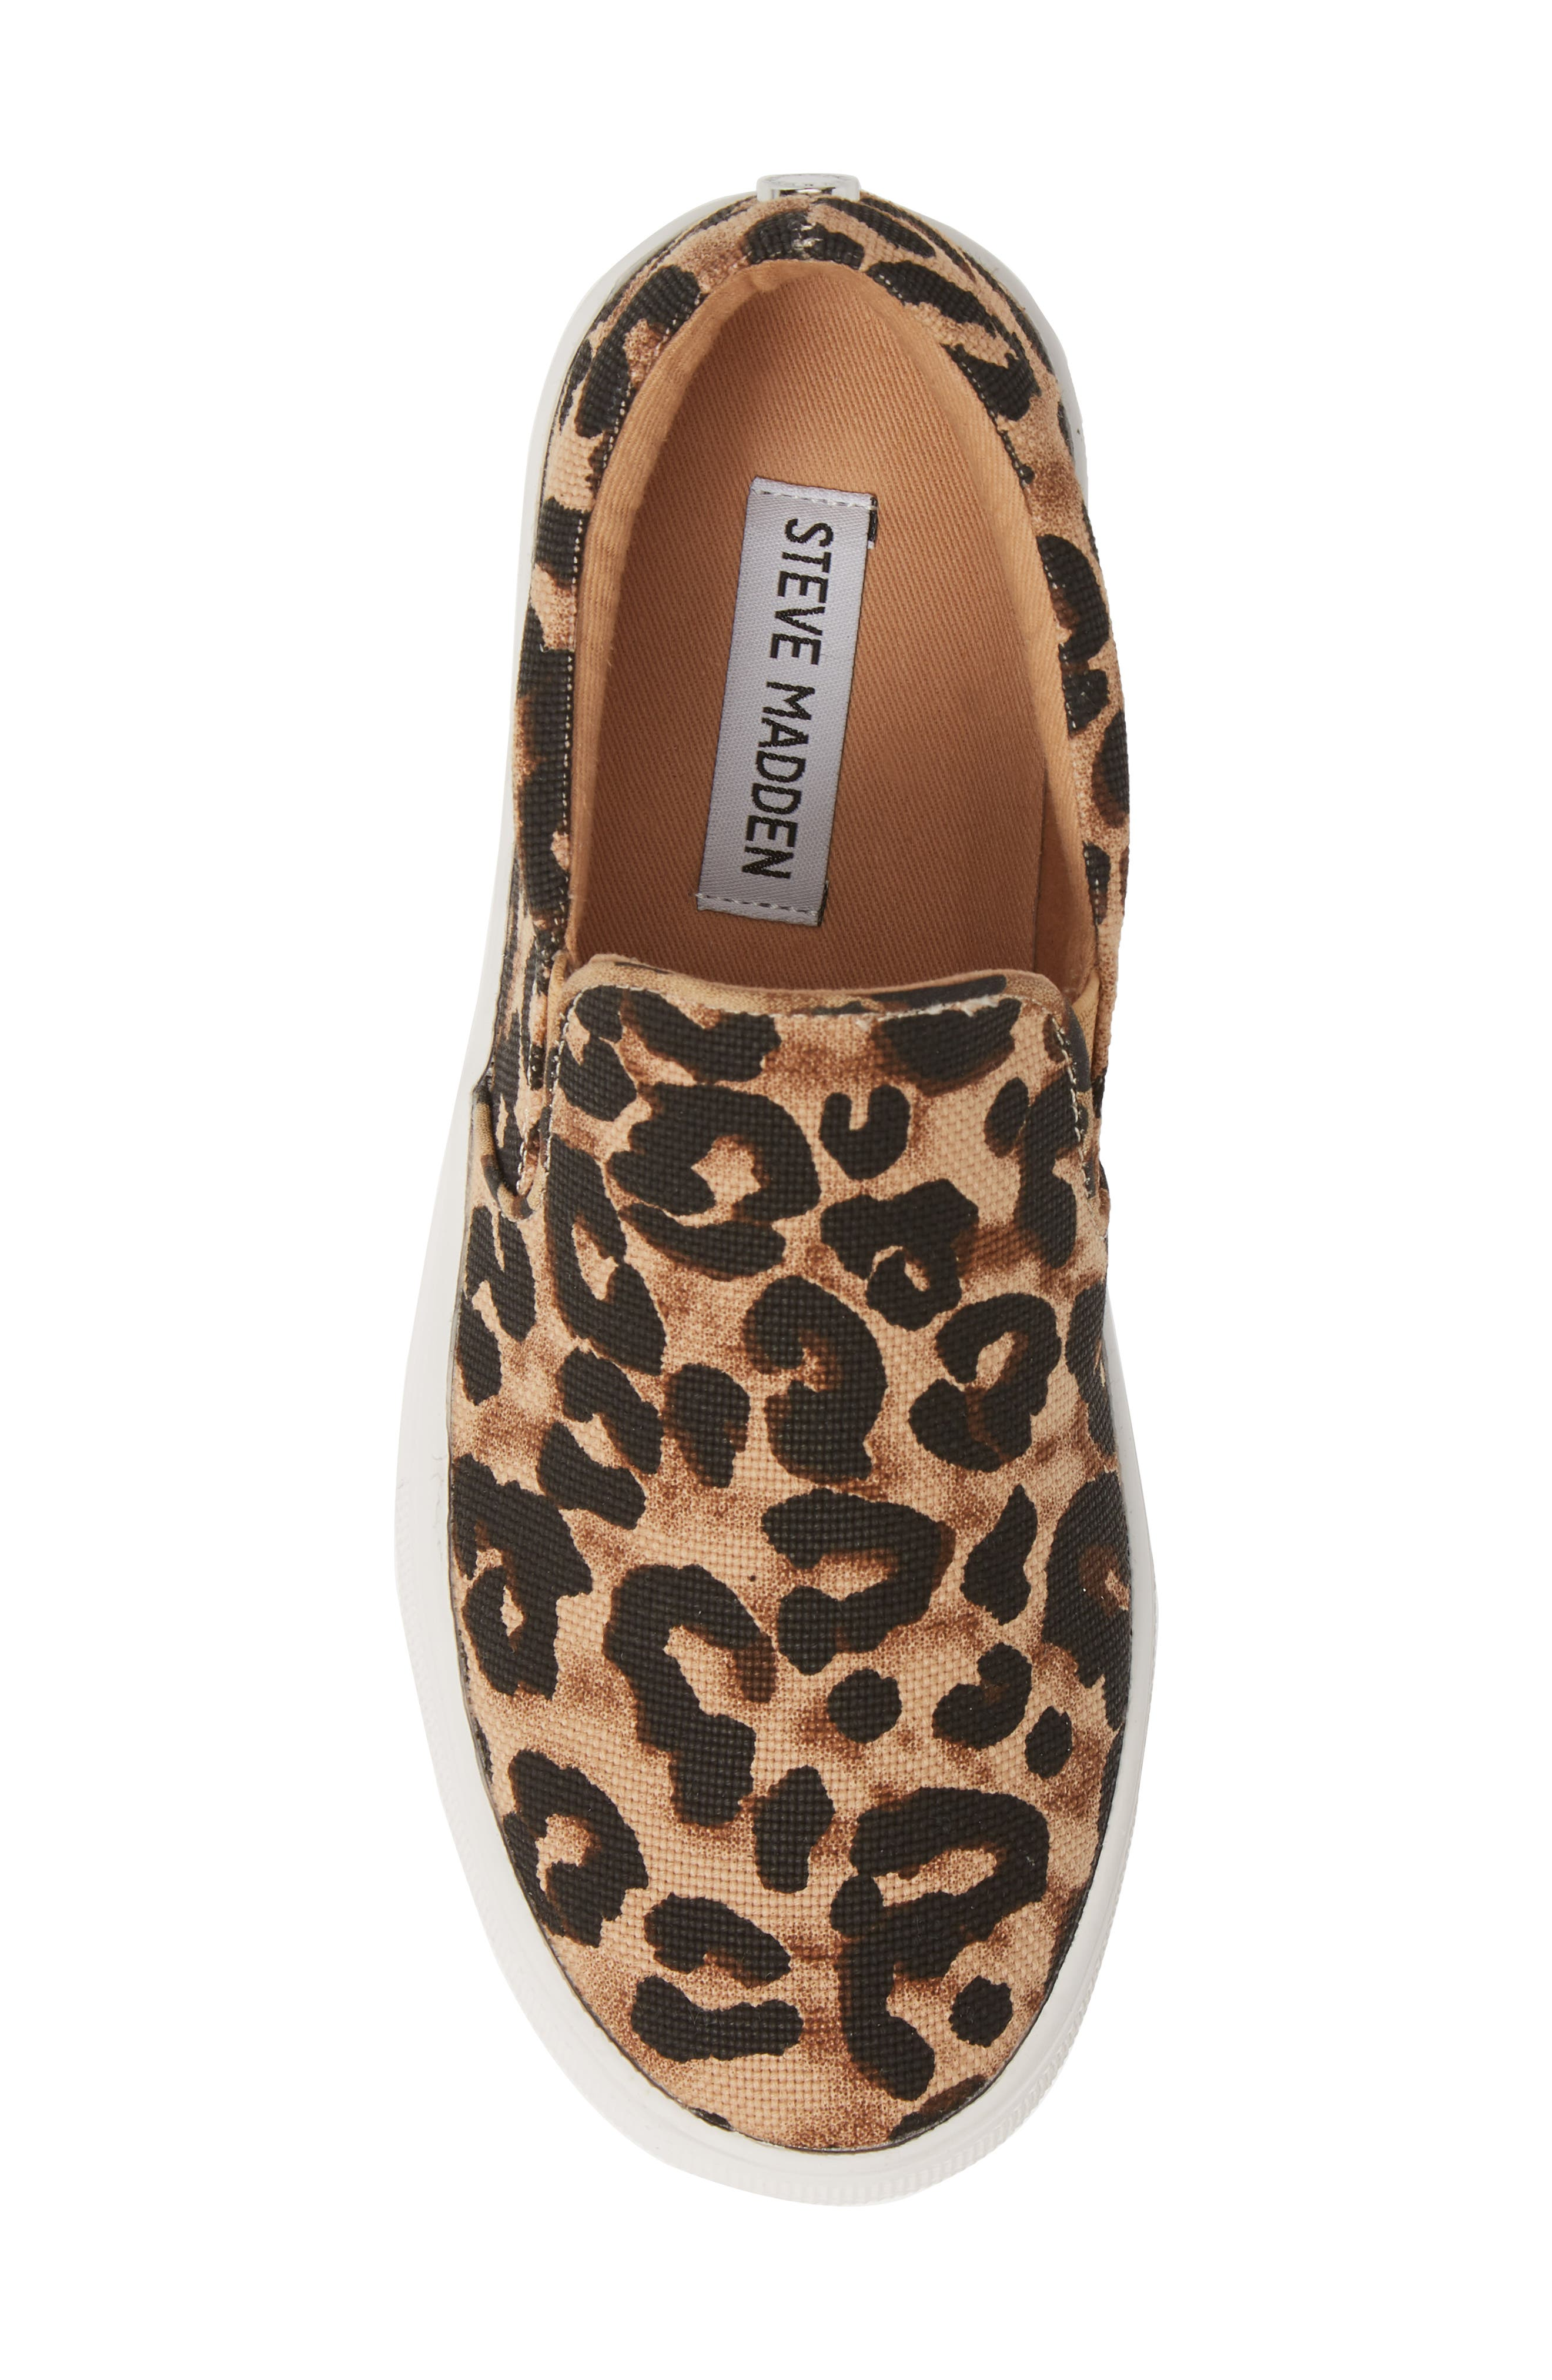 STEVE MADDEN,                             Gills Platform Slip-On Sneaker,                             Alternate thumbnail 5, color,                             LEOPARD PRINT